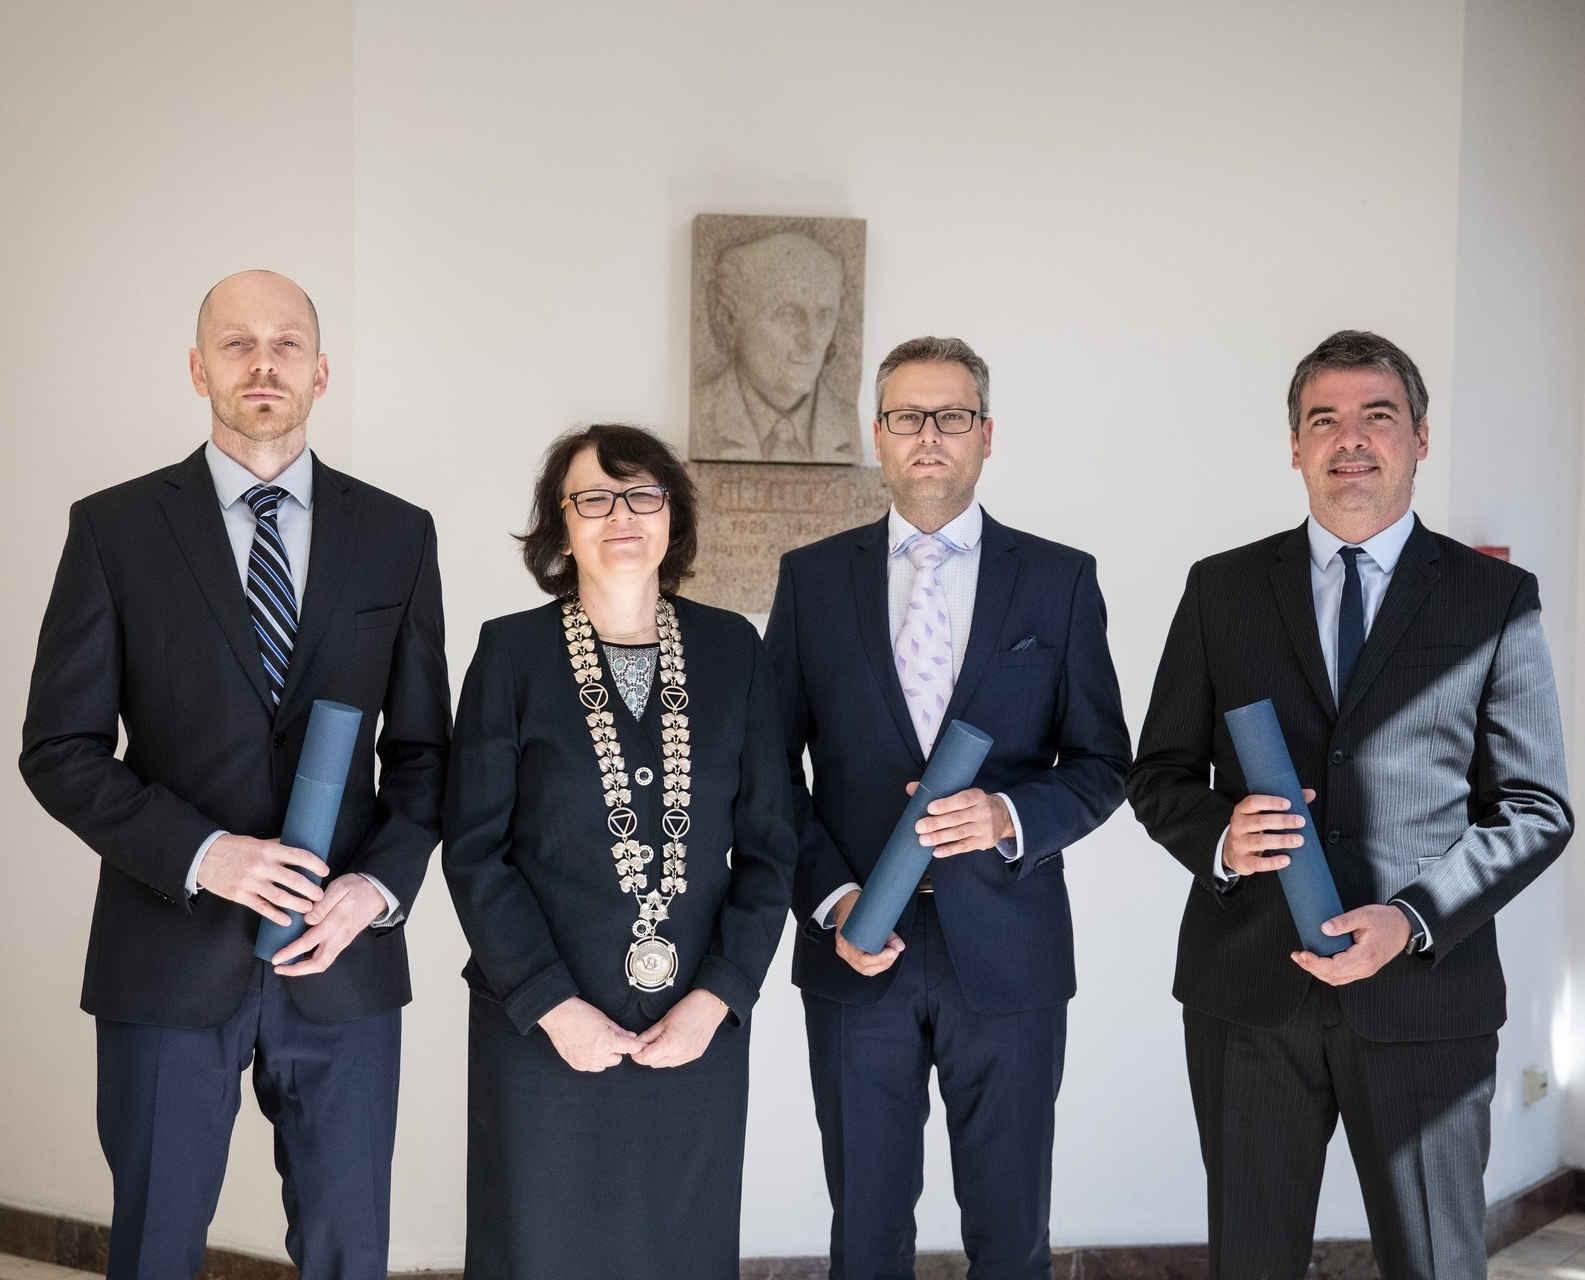 FIR Has Two New Associate Professors. Vincenzo Merella and Přemysl Průša Received a Decree From the Rector of the University of Economics, Prague.